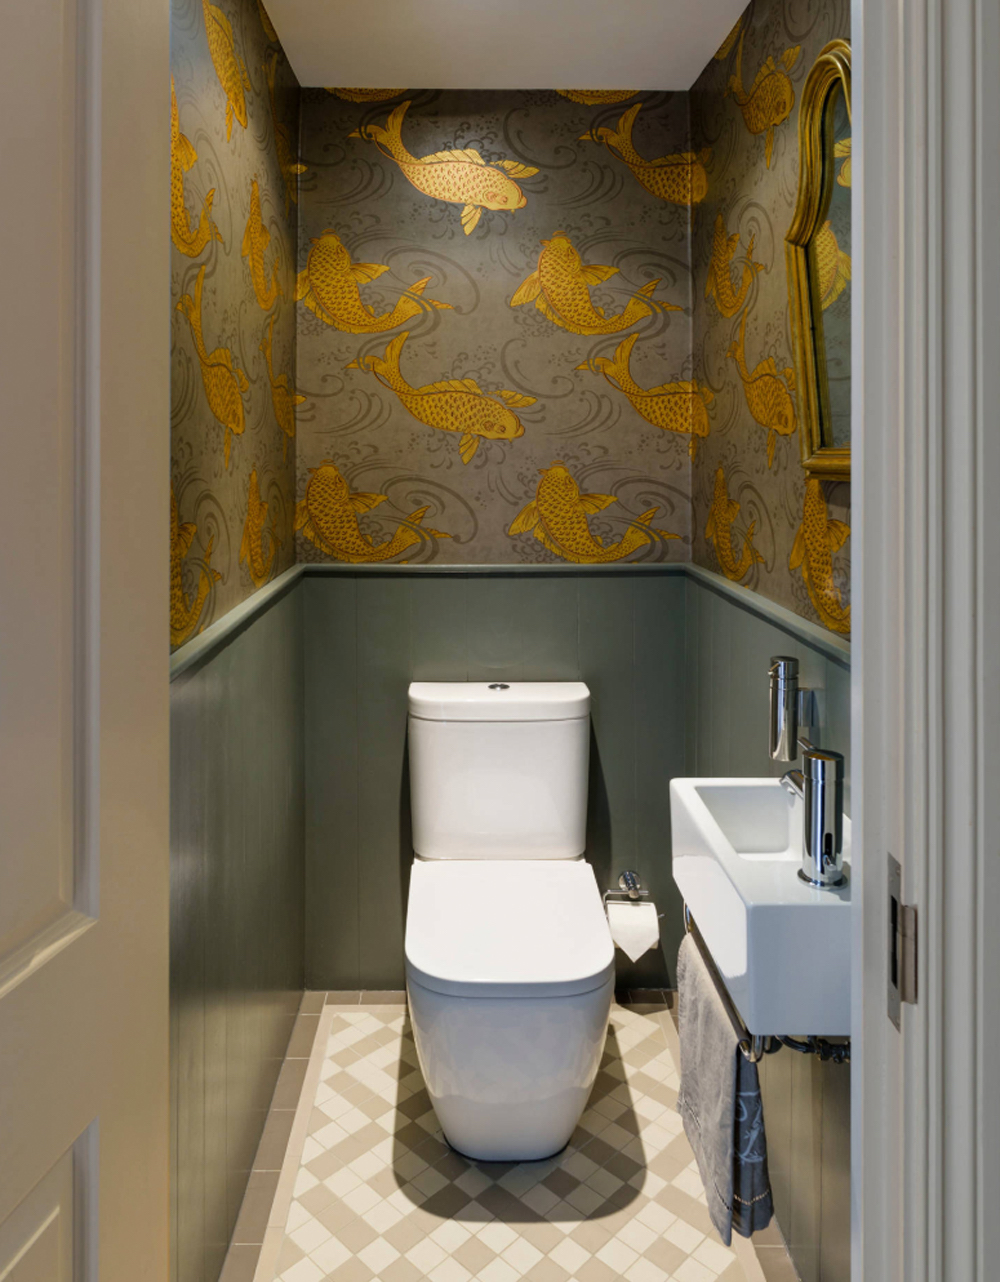 Cloakroom with Osborne & Little Derwent wallpaper - Brian O'Tuama Architects || 15 small cloakrooms / powder rooms that are big on style - FIRST SENSE